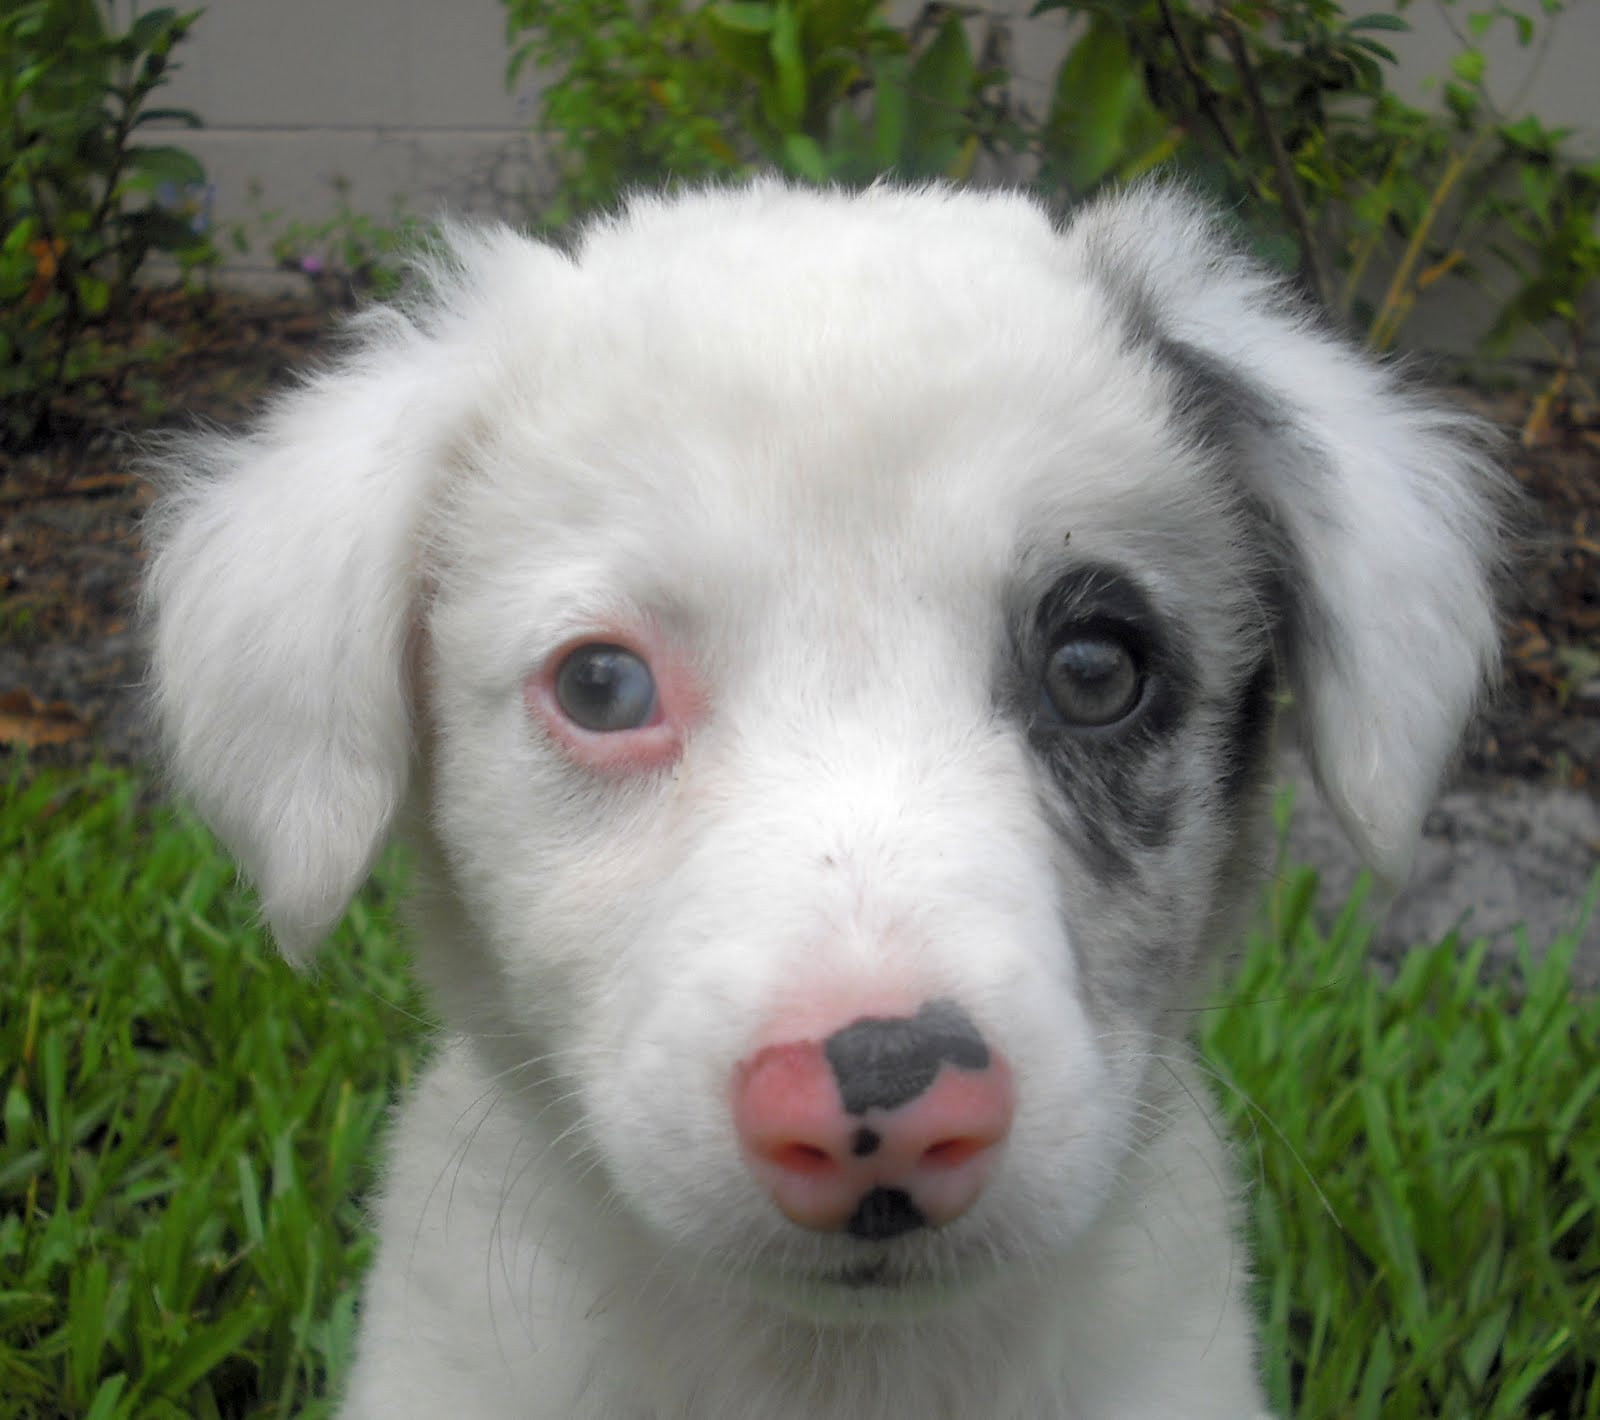 White Dog Breed With Spots Around Eyes